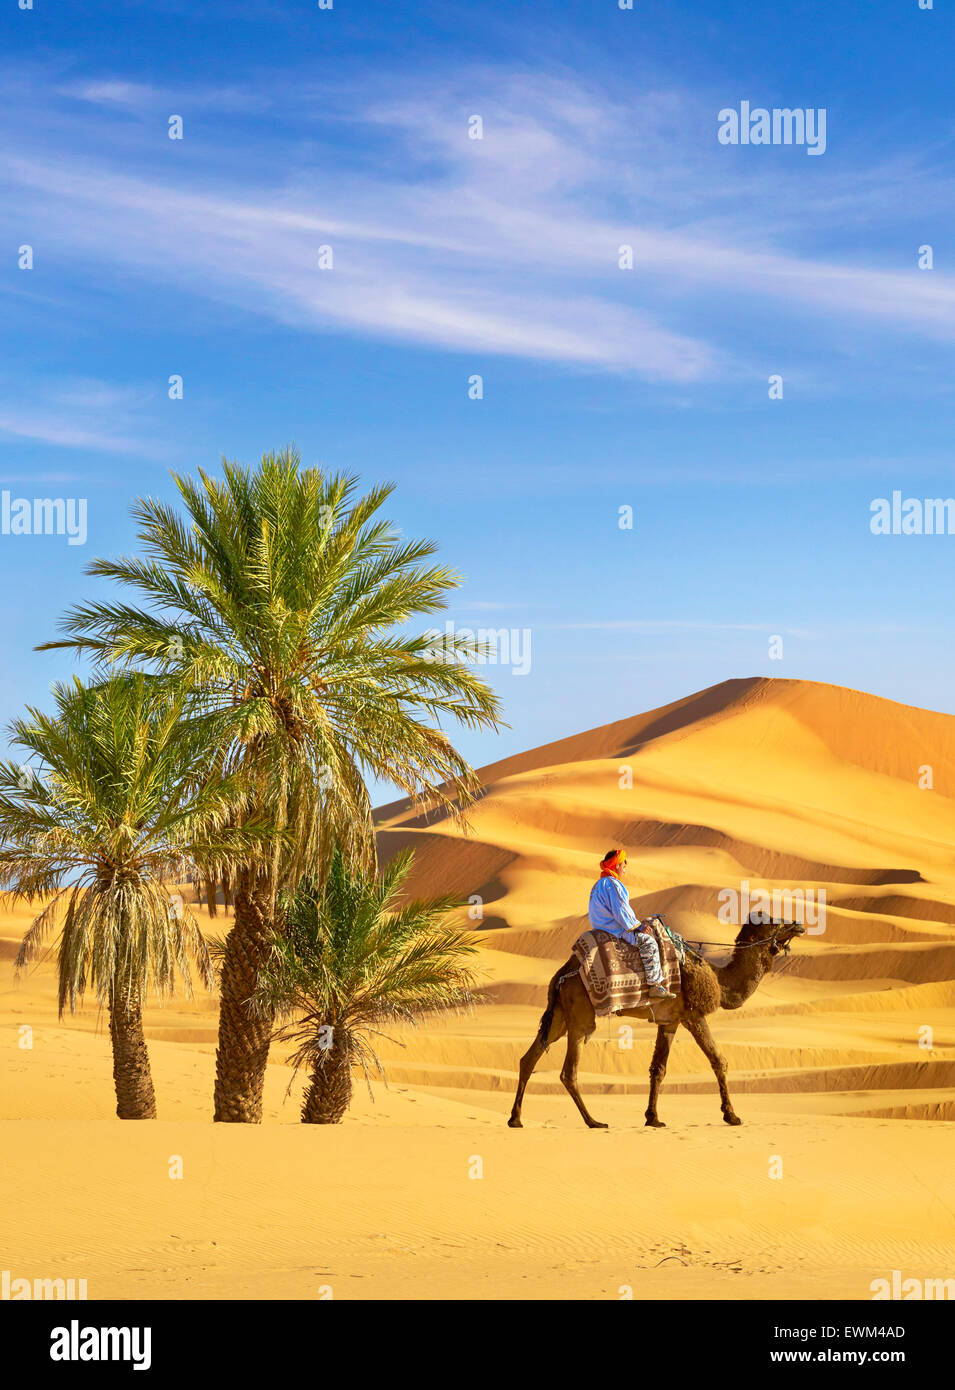 Berber man ride on the camel, Erg Chebbi desert near Merzouga, Sahara, Morocco - Stock Image